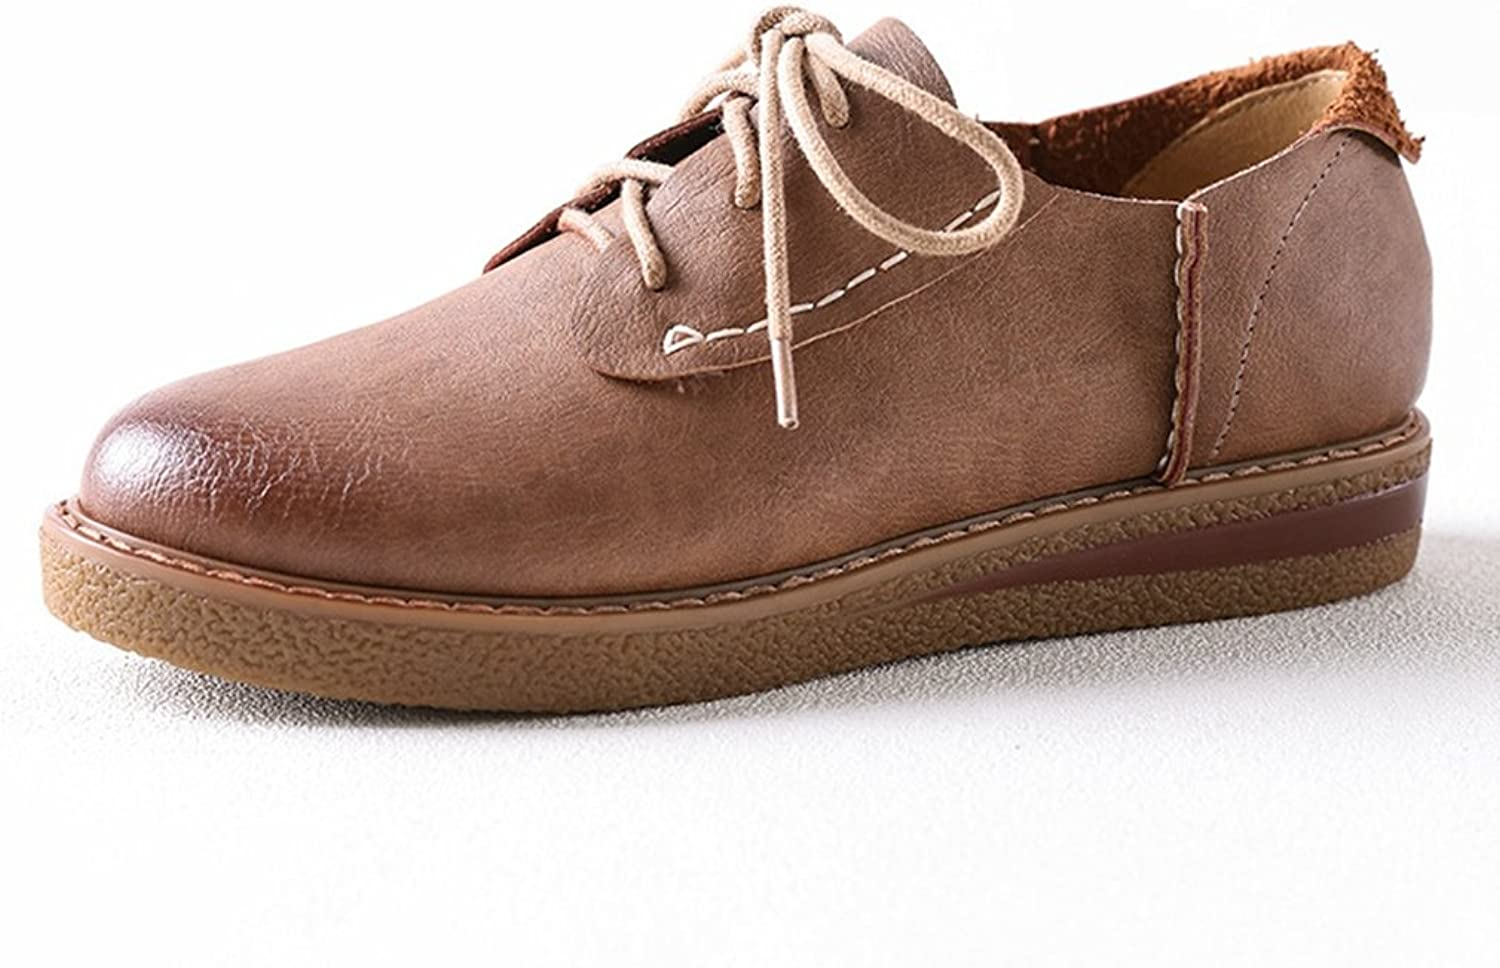 Hoxekle Womens Brown Pure color Perforated Vintage Oxford shoes Flat with Wingtip Oxford shoes